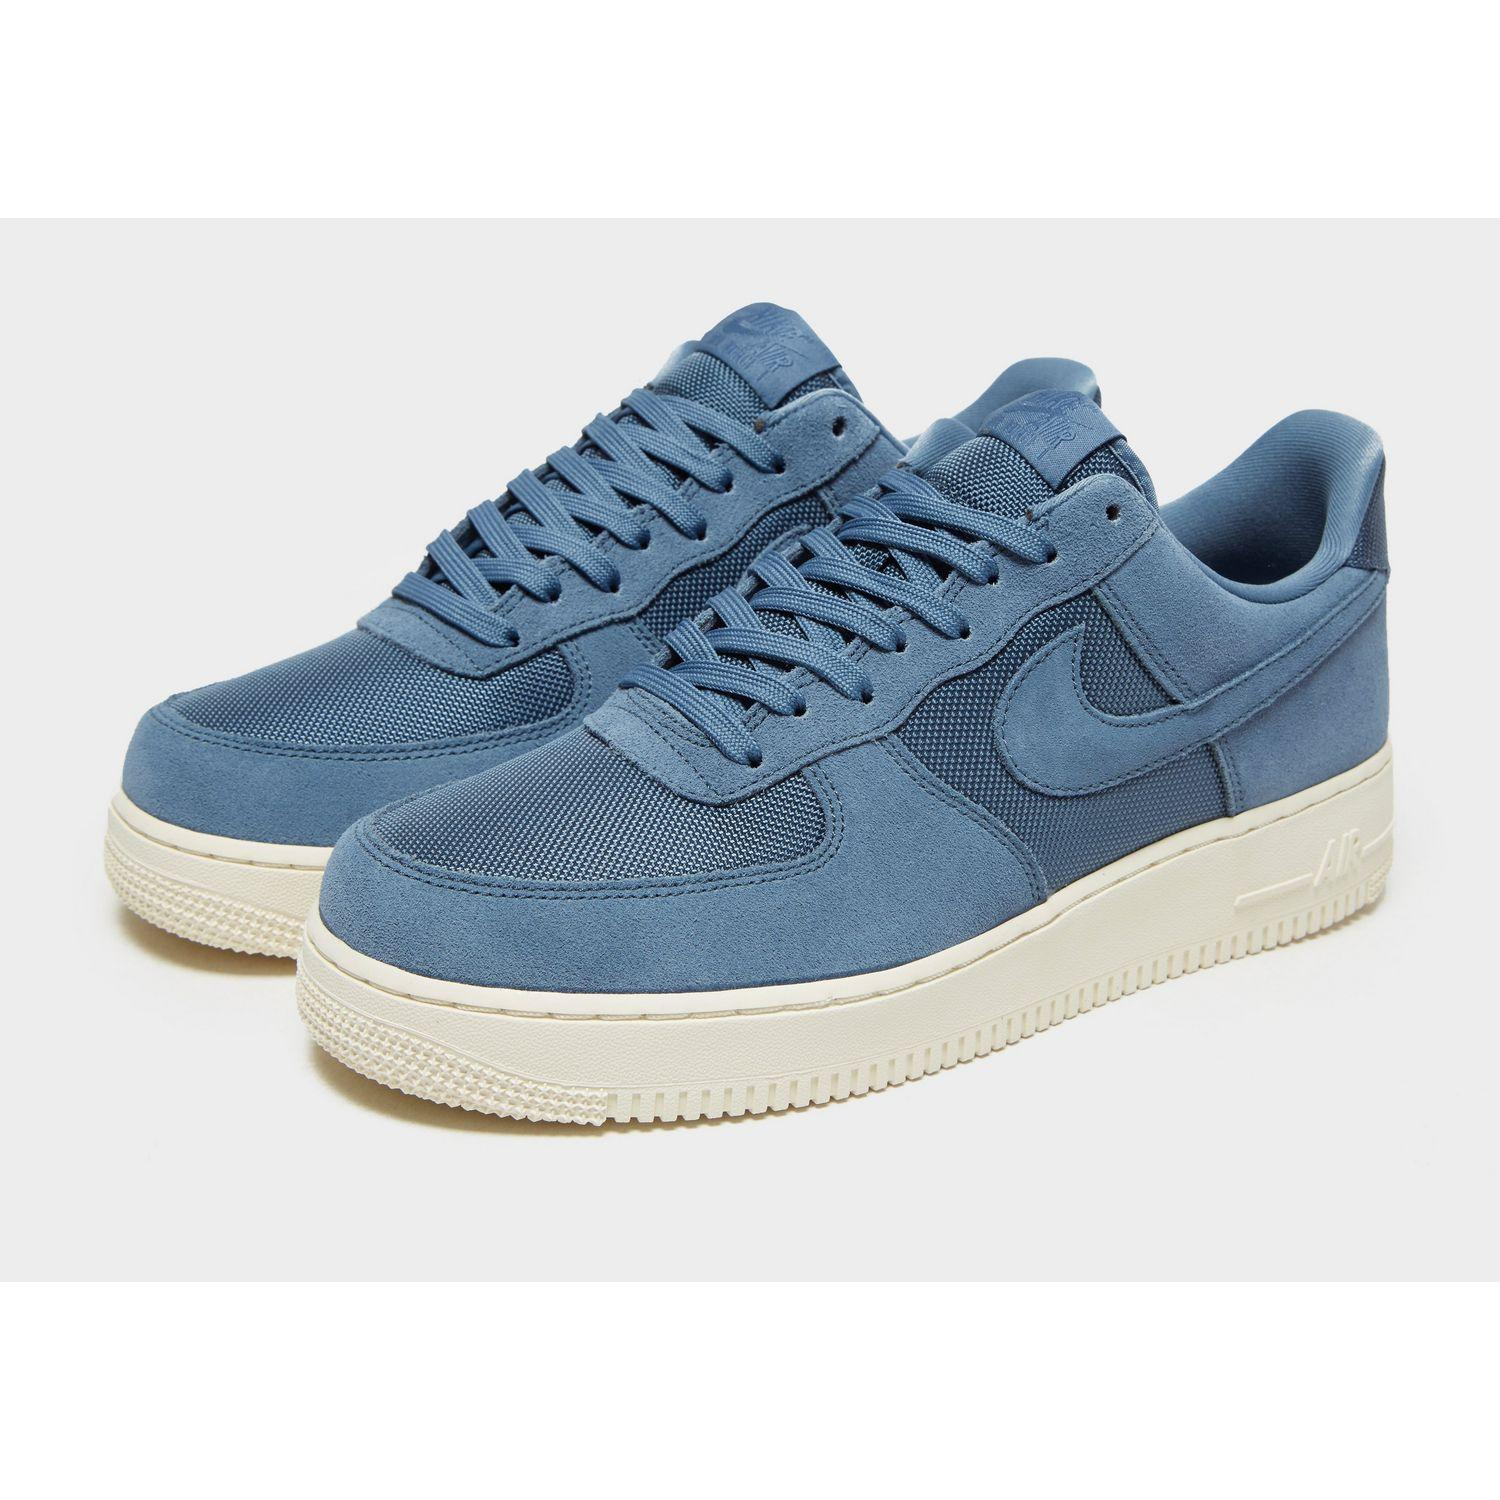 Nike Suede Air Force 1 '07 Low Essential in Blue/White (Blue) for ...